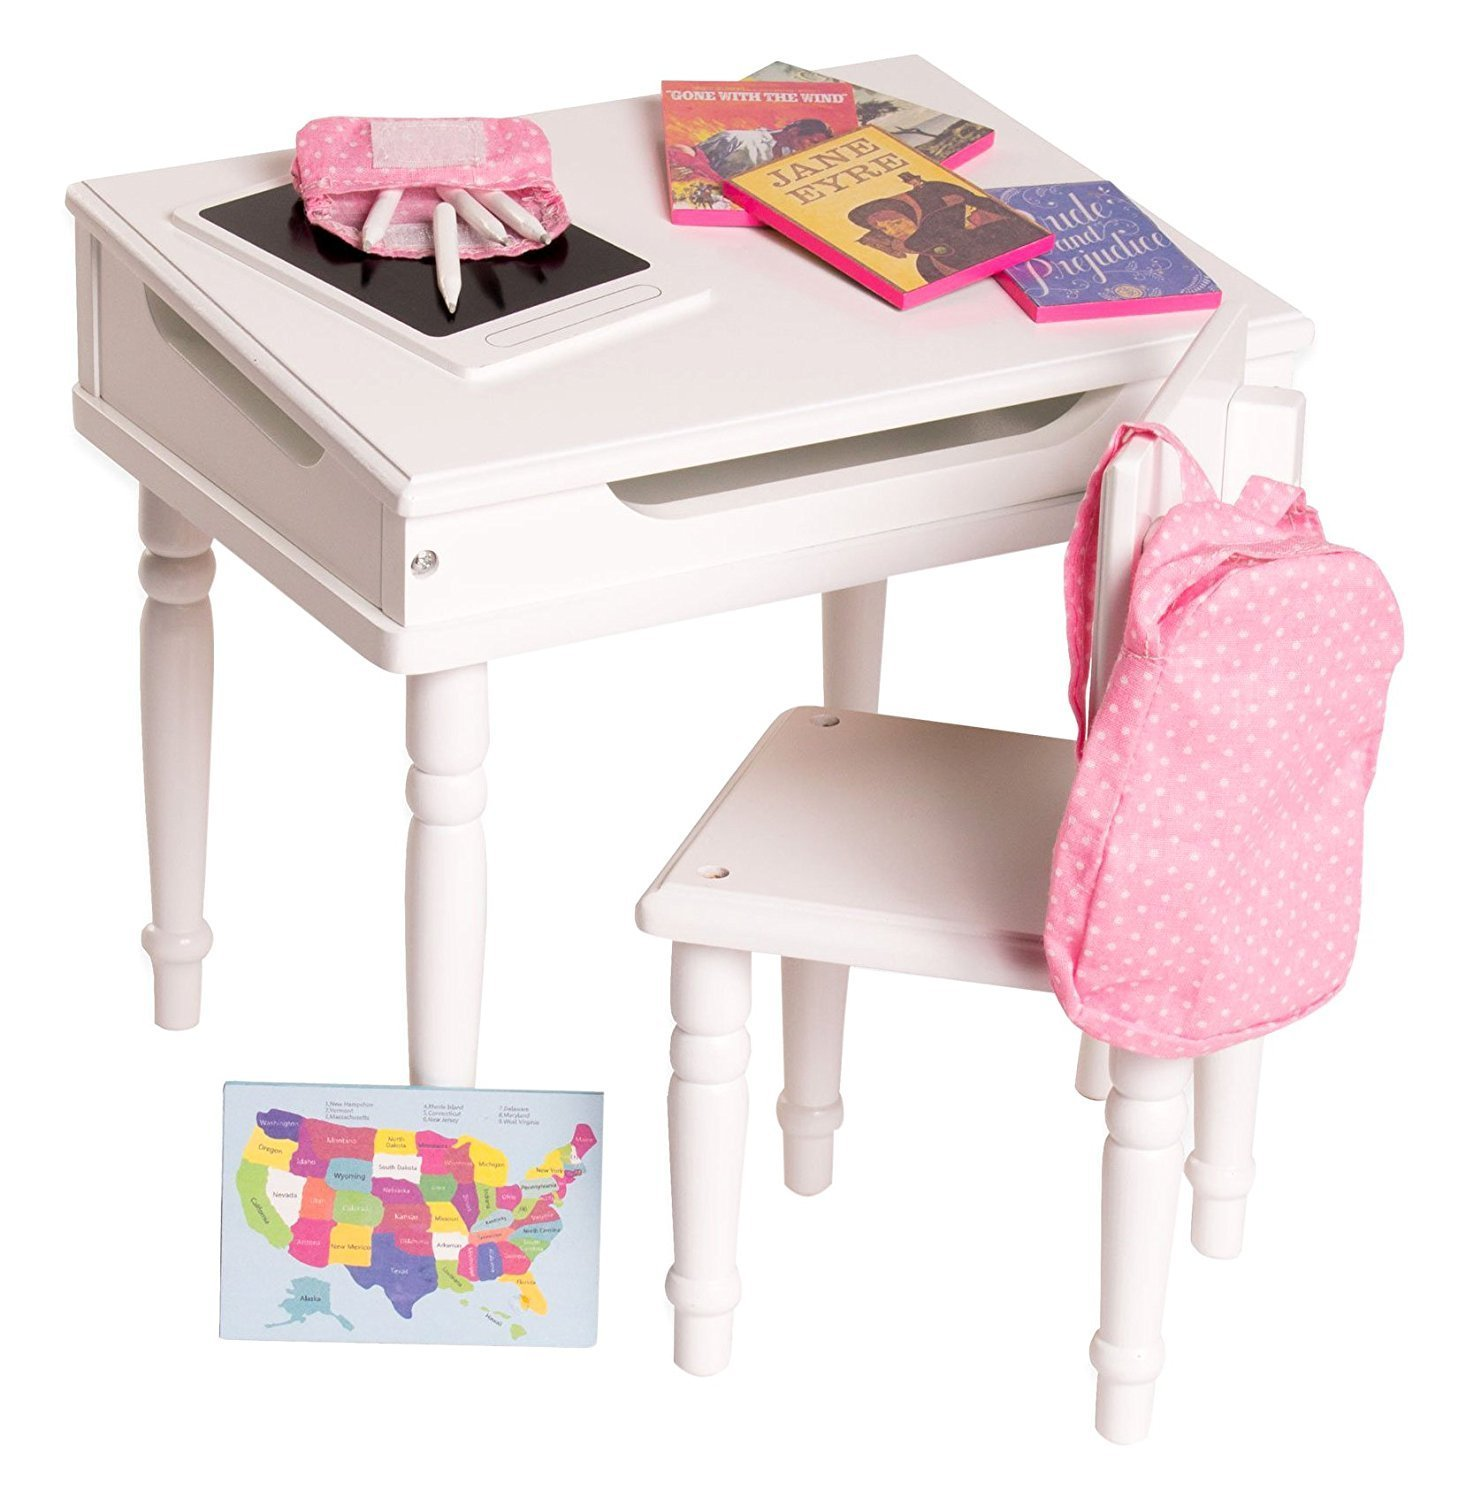 18 Inch Doll Furniture Desk and Chair Set - Classroom Accessories Included - Playtime by Eimmie Collection 34047